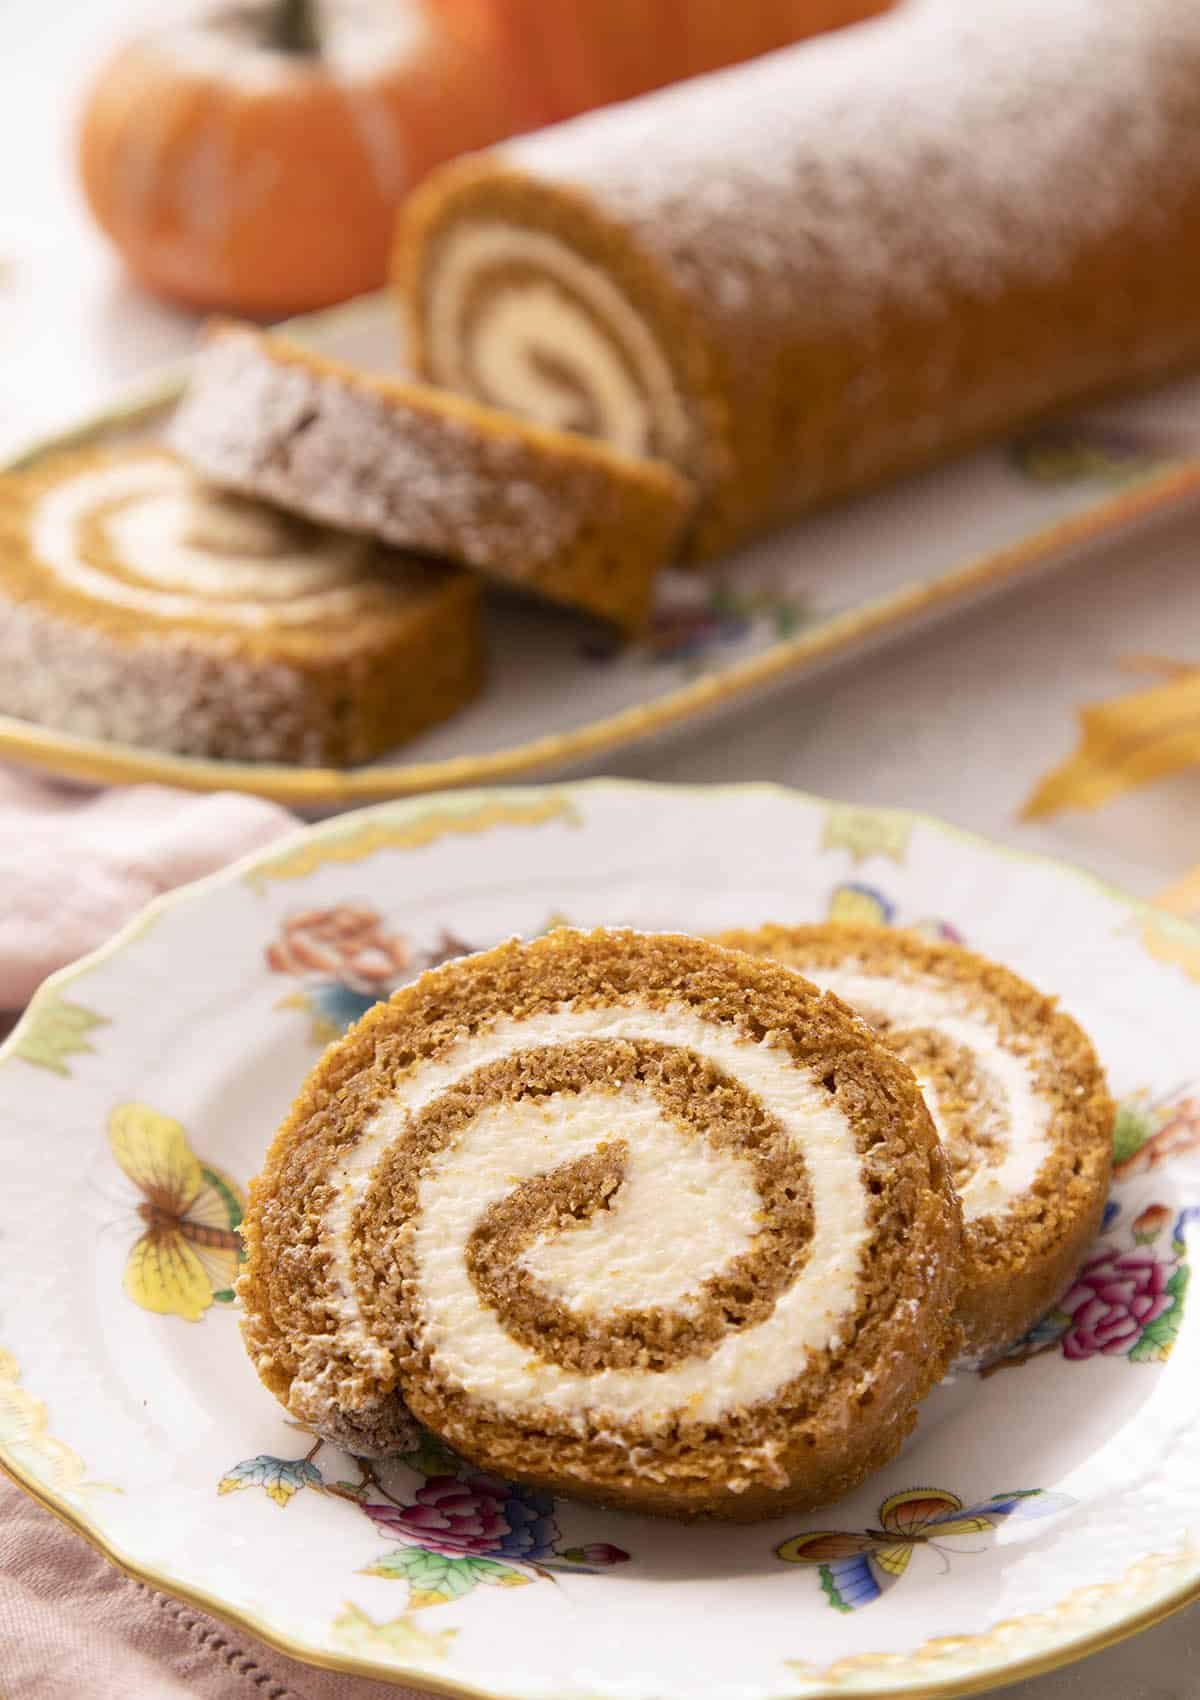 Two pieces of a pumpkin roll cake on a plate.